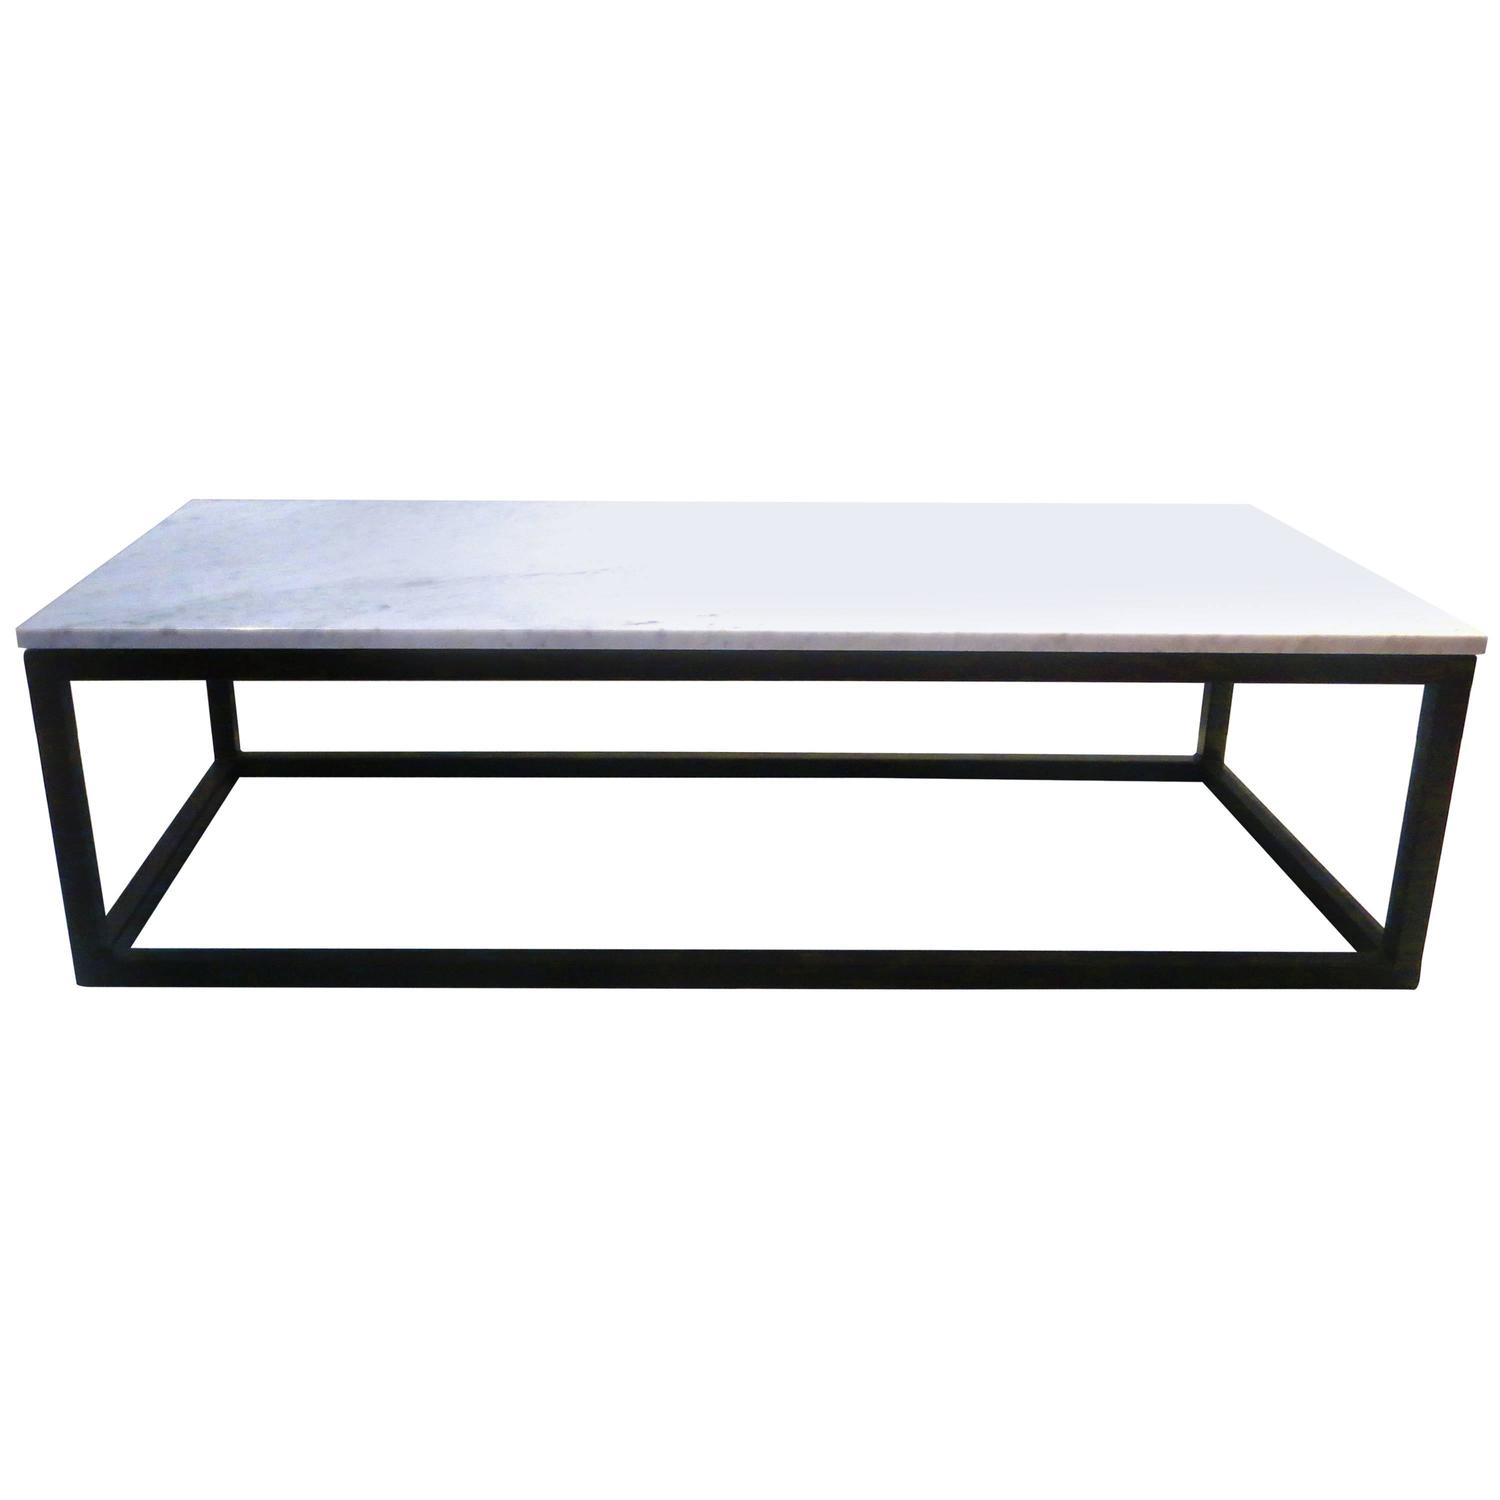 Square Steel Coffee Table Italian C 1970: 1970s Rectangle Coffee Table Marble And Square Tube Metal